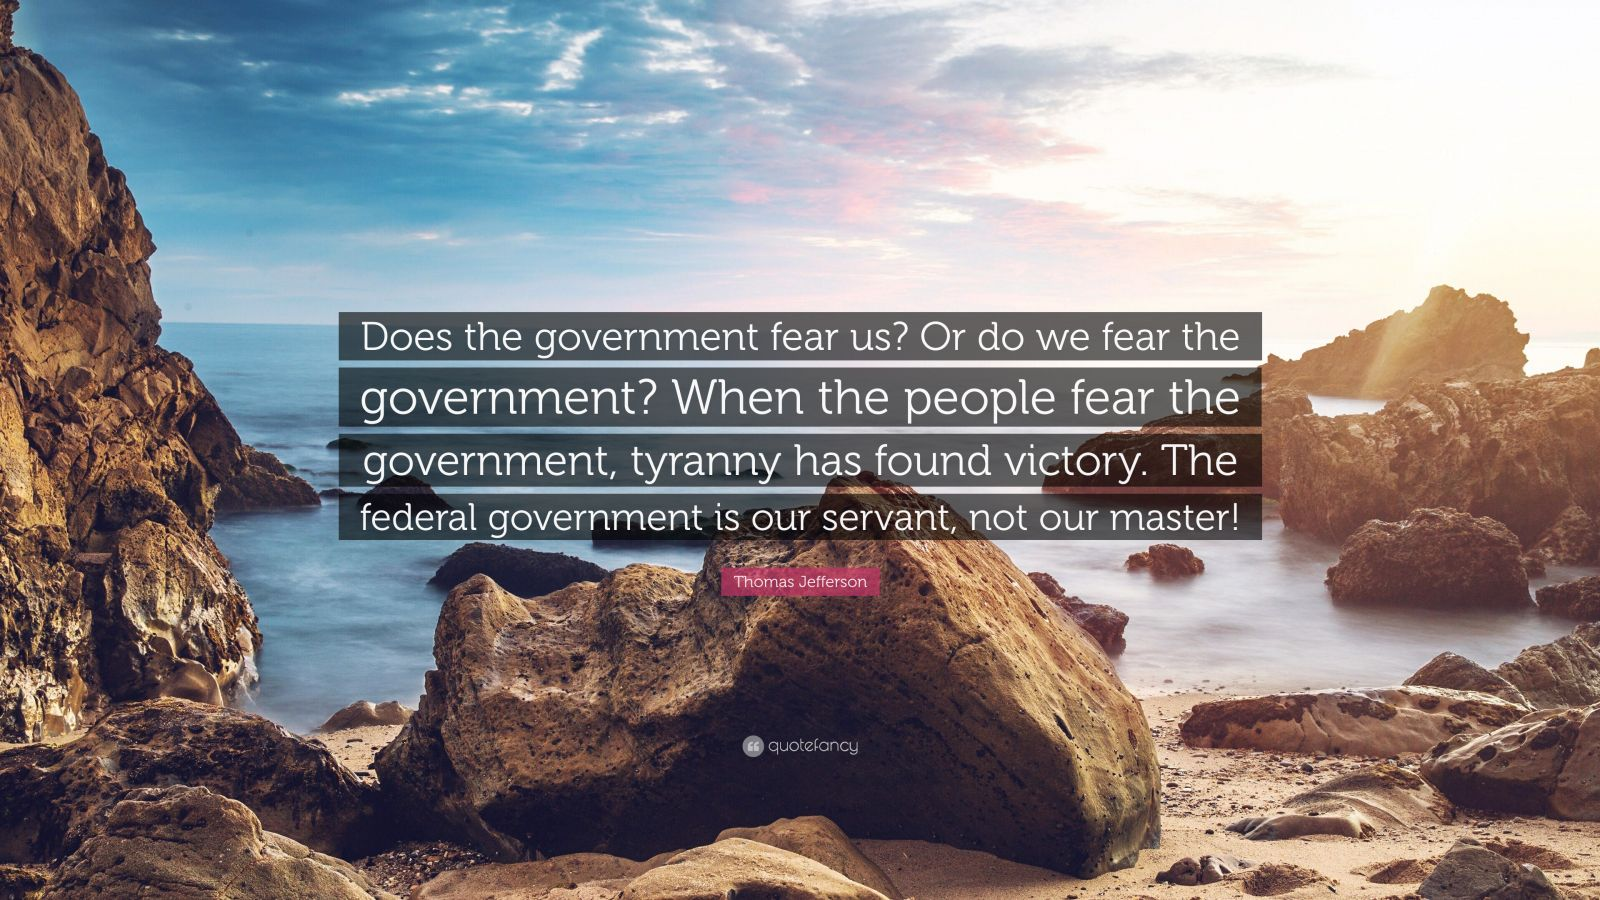 """Thomas Jefferson Quote: """"Does the government fear us? Or do we fear the government? When the people fear the government, tyranny has found victory. The federal government is our servant, not our master!"""""""